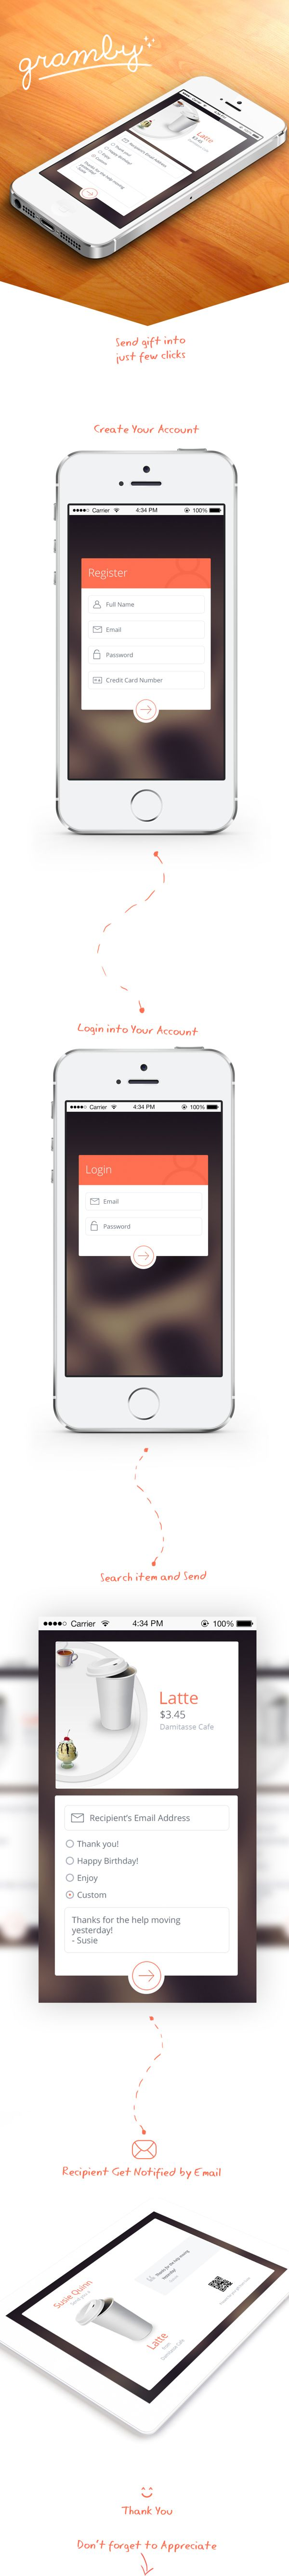 Gramby Giftshop - Mobile App - check out register screen and idea for sending a gift to a recipient within yellow